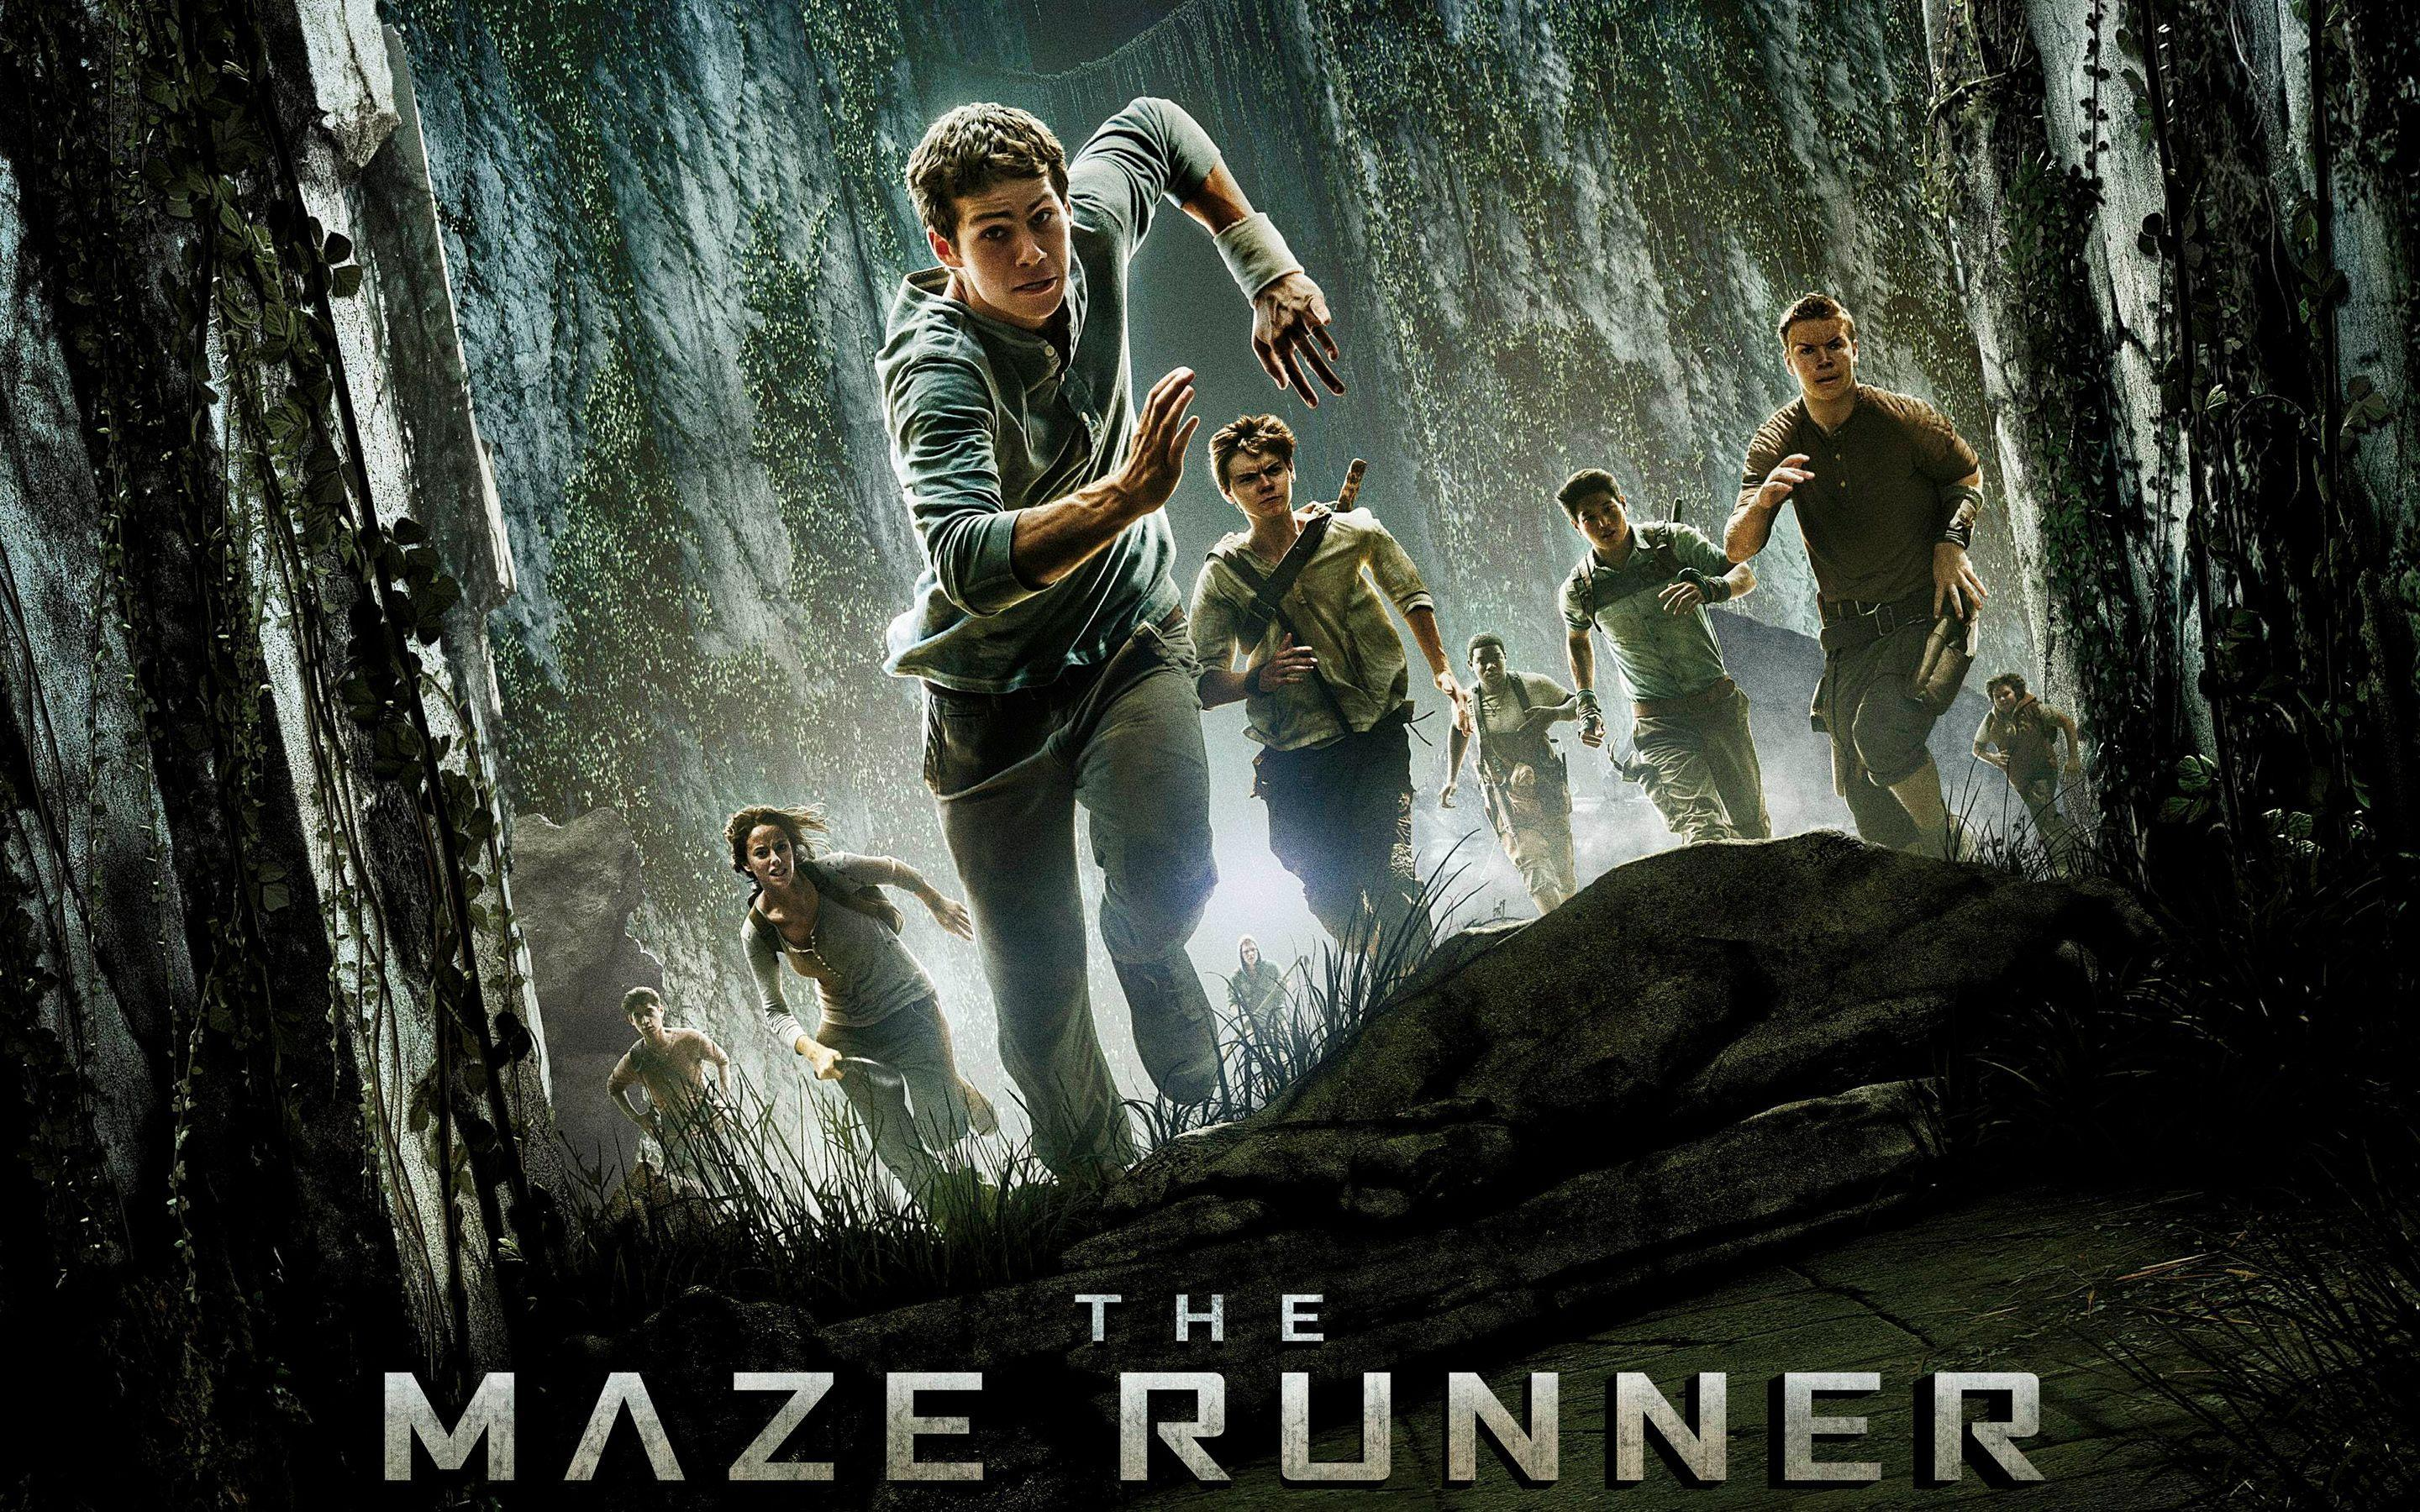 Maze Runner Wallpapers - Top Free Maze Runner Backgrounds ...